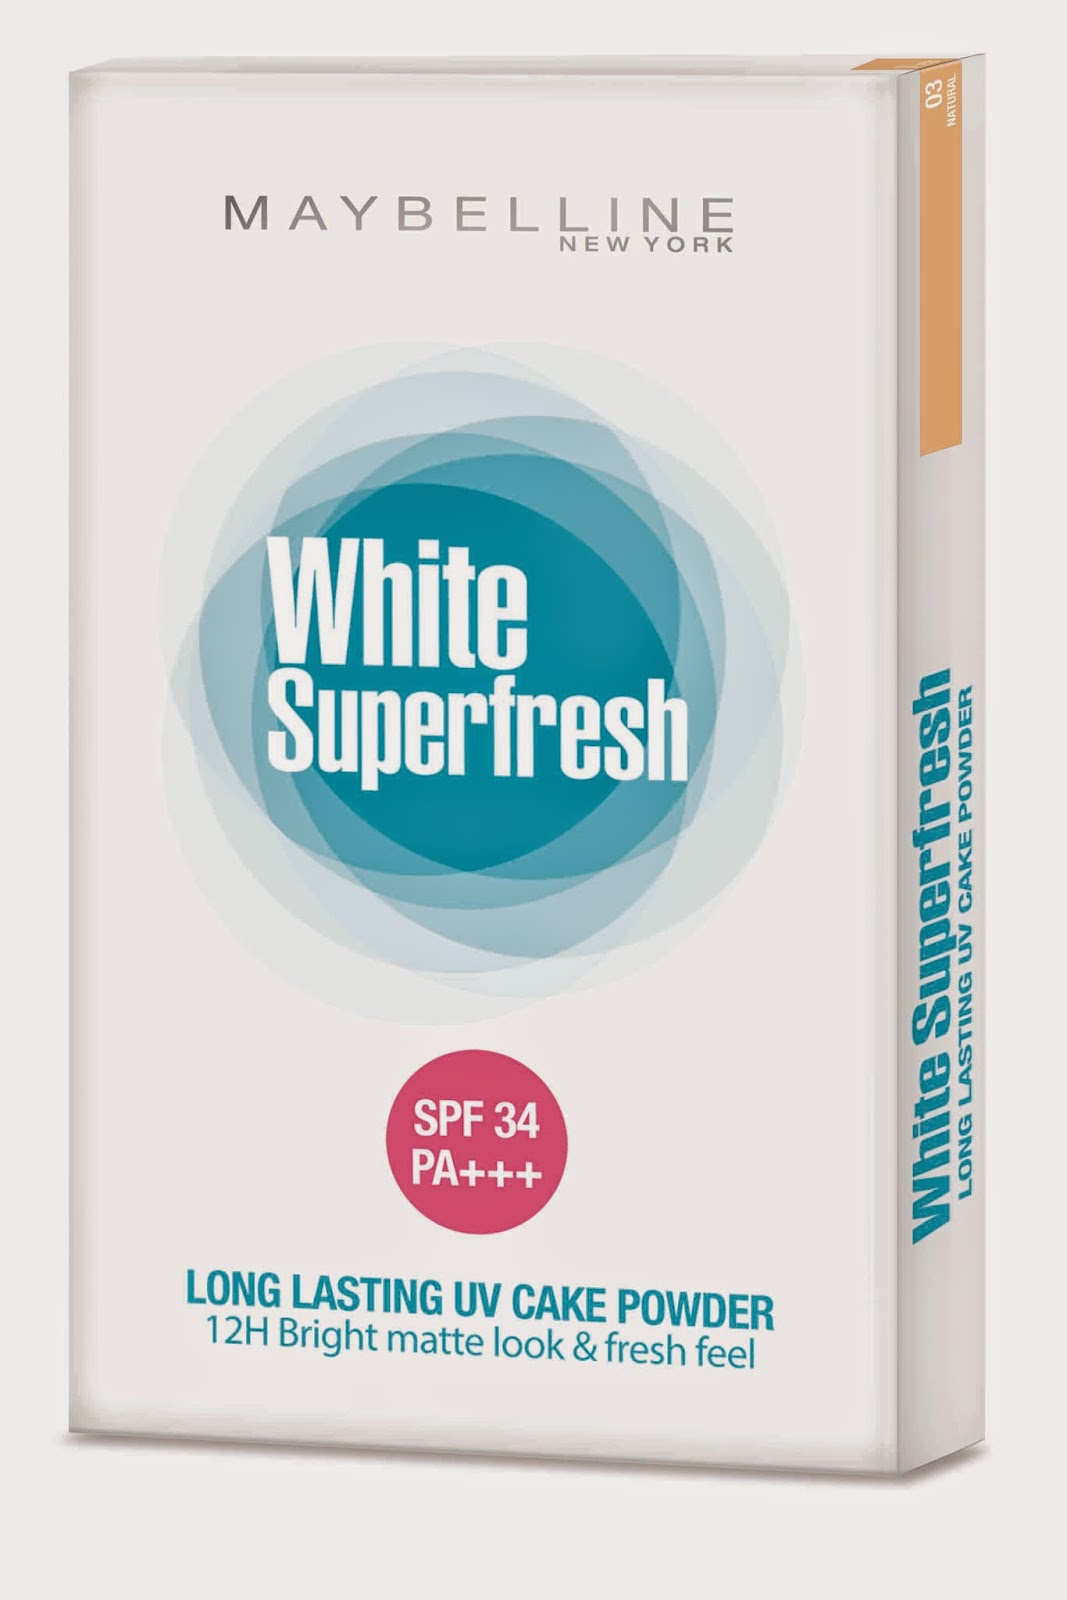 Maybelline White Super Fresh, Maybelline New York